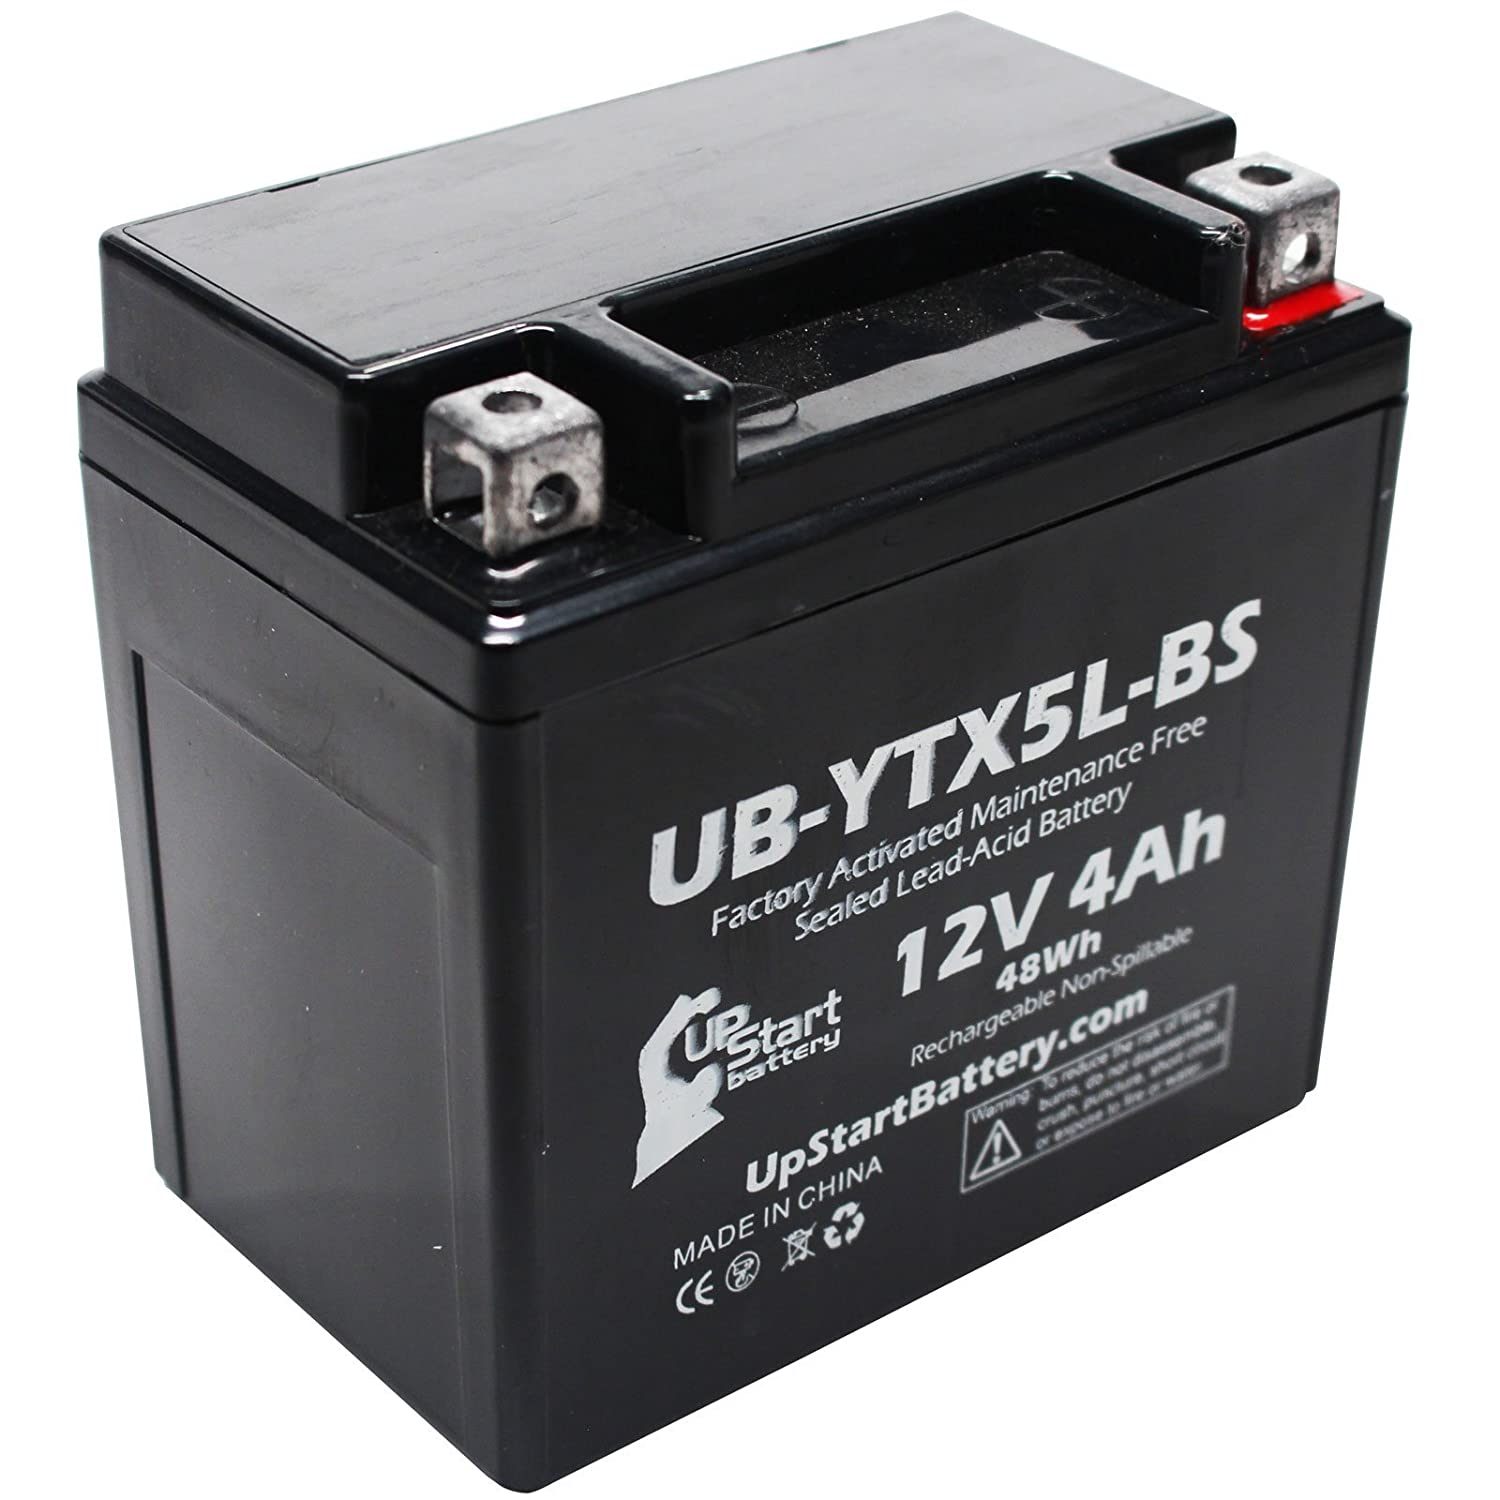 Replacement 1988 Suzuki LT80 QuadSport 80 80CC Factory Activated, Maintenance Free, ATV Battery - 12V, 4Ah, UB-YTX5L-BS Upstart Battery UB-YTX5L-BS-DL101